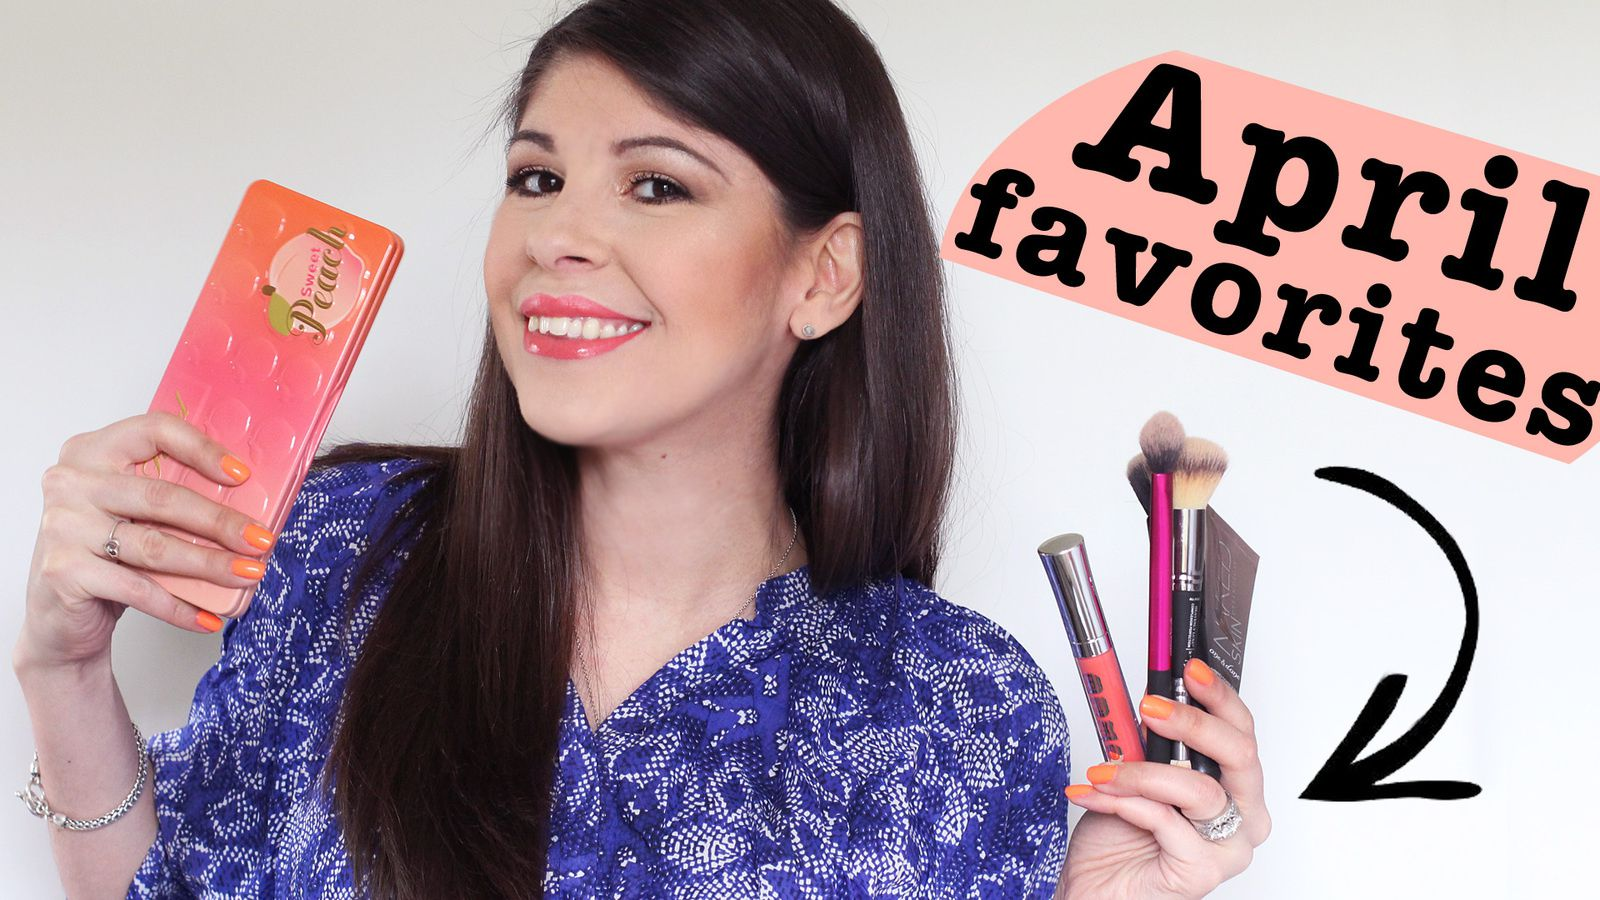 APRIL FAVORITES 2016! | Urban Decay, Wet n Wild, IT Cosmetics & more!